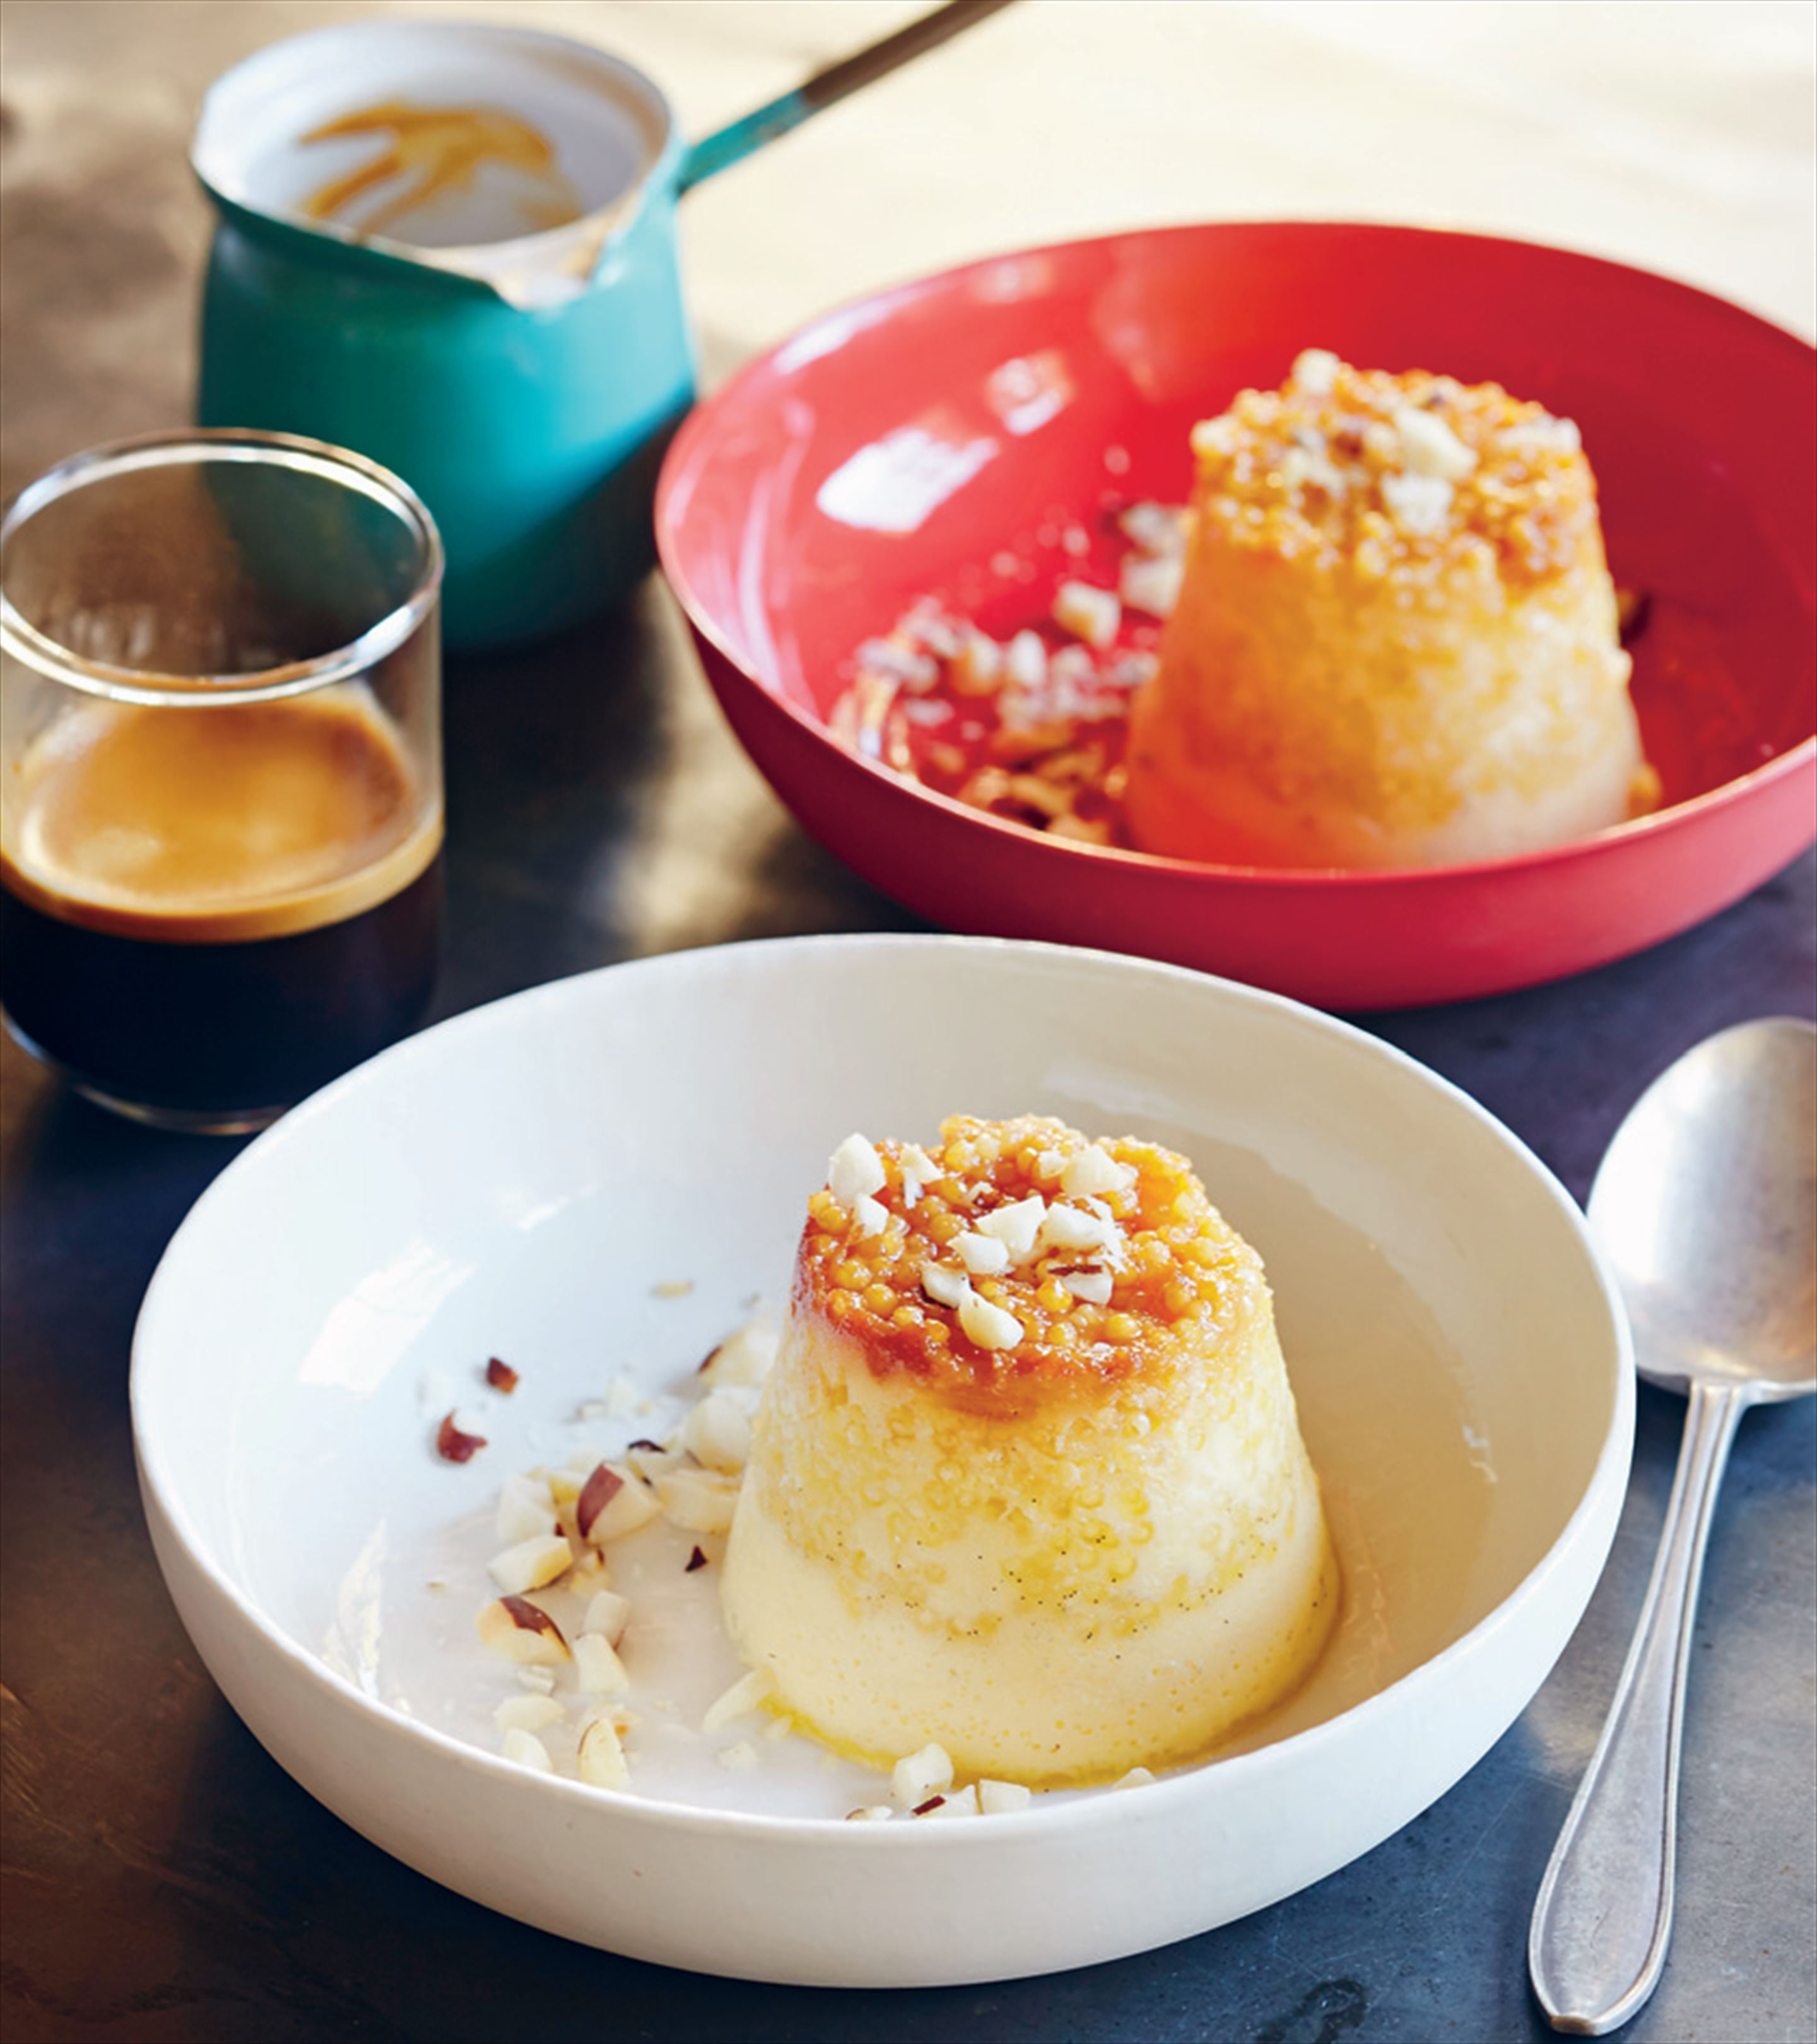 Coconut and sago puddings